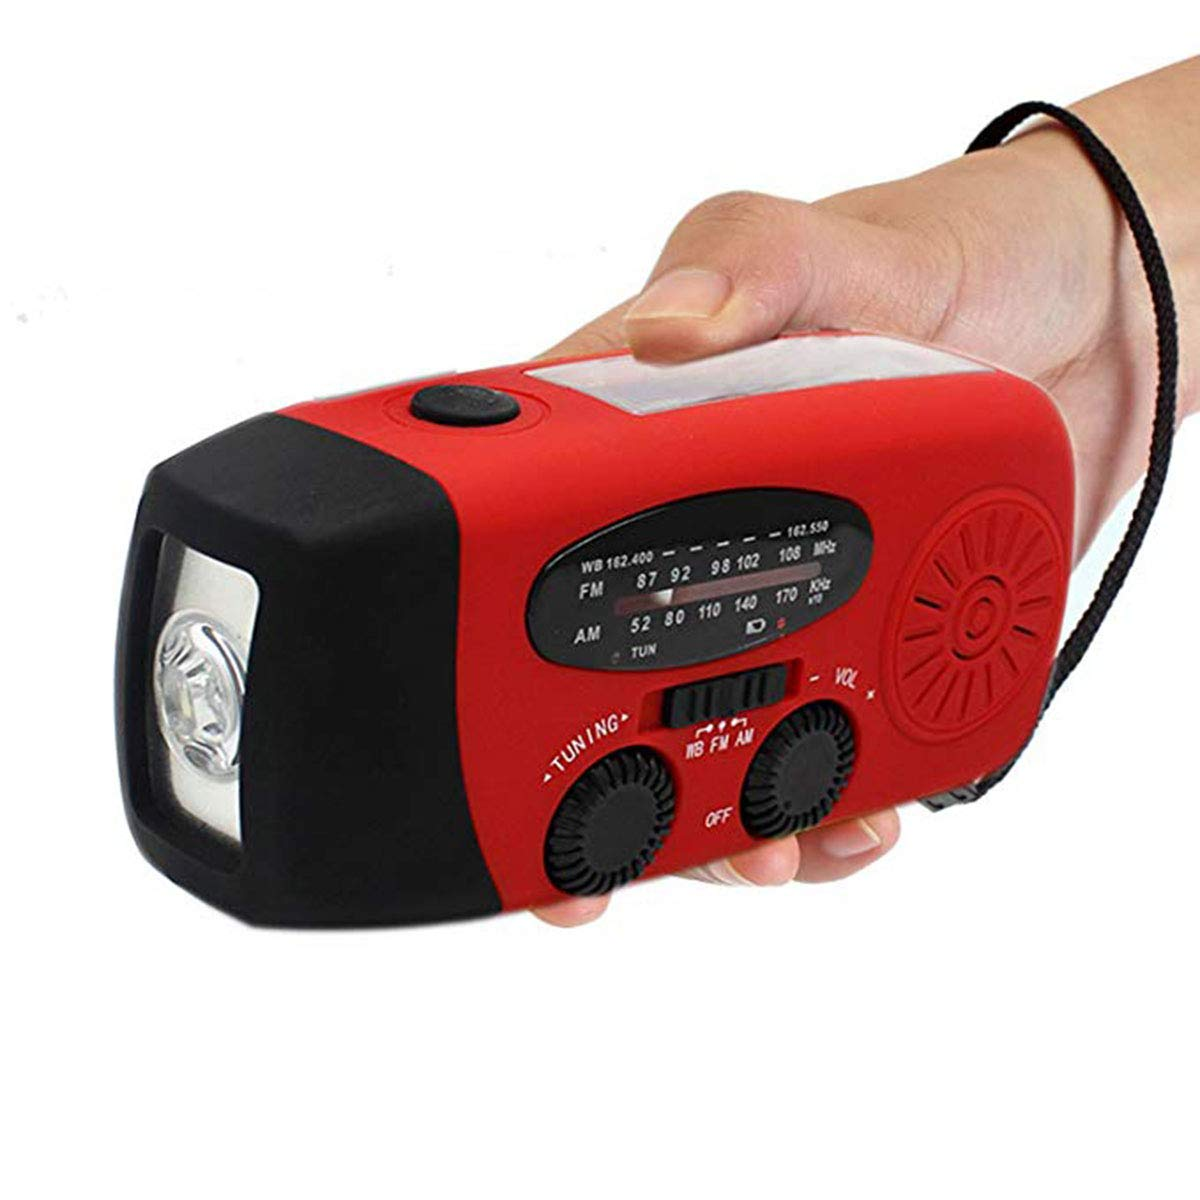 VOSAREA Emergency Solar Crank AM FM Camp Radio with LED Flashlight USB Output Port(Red)